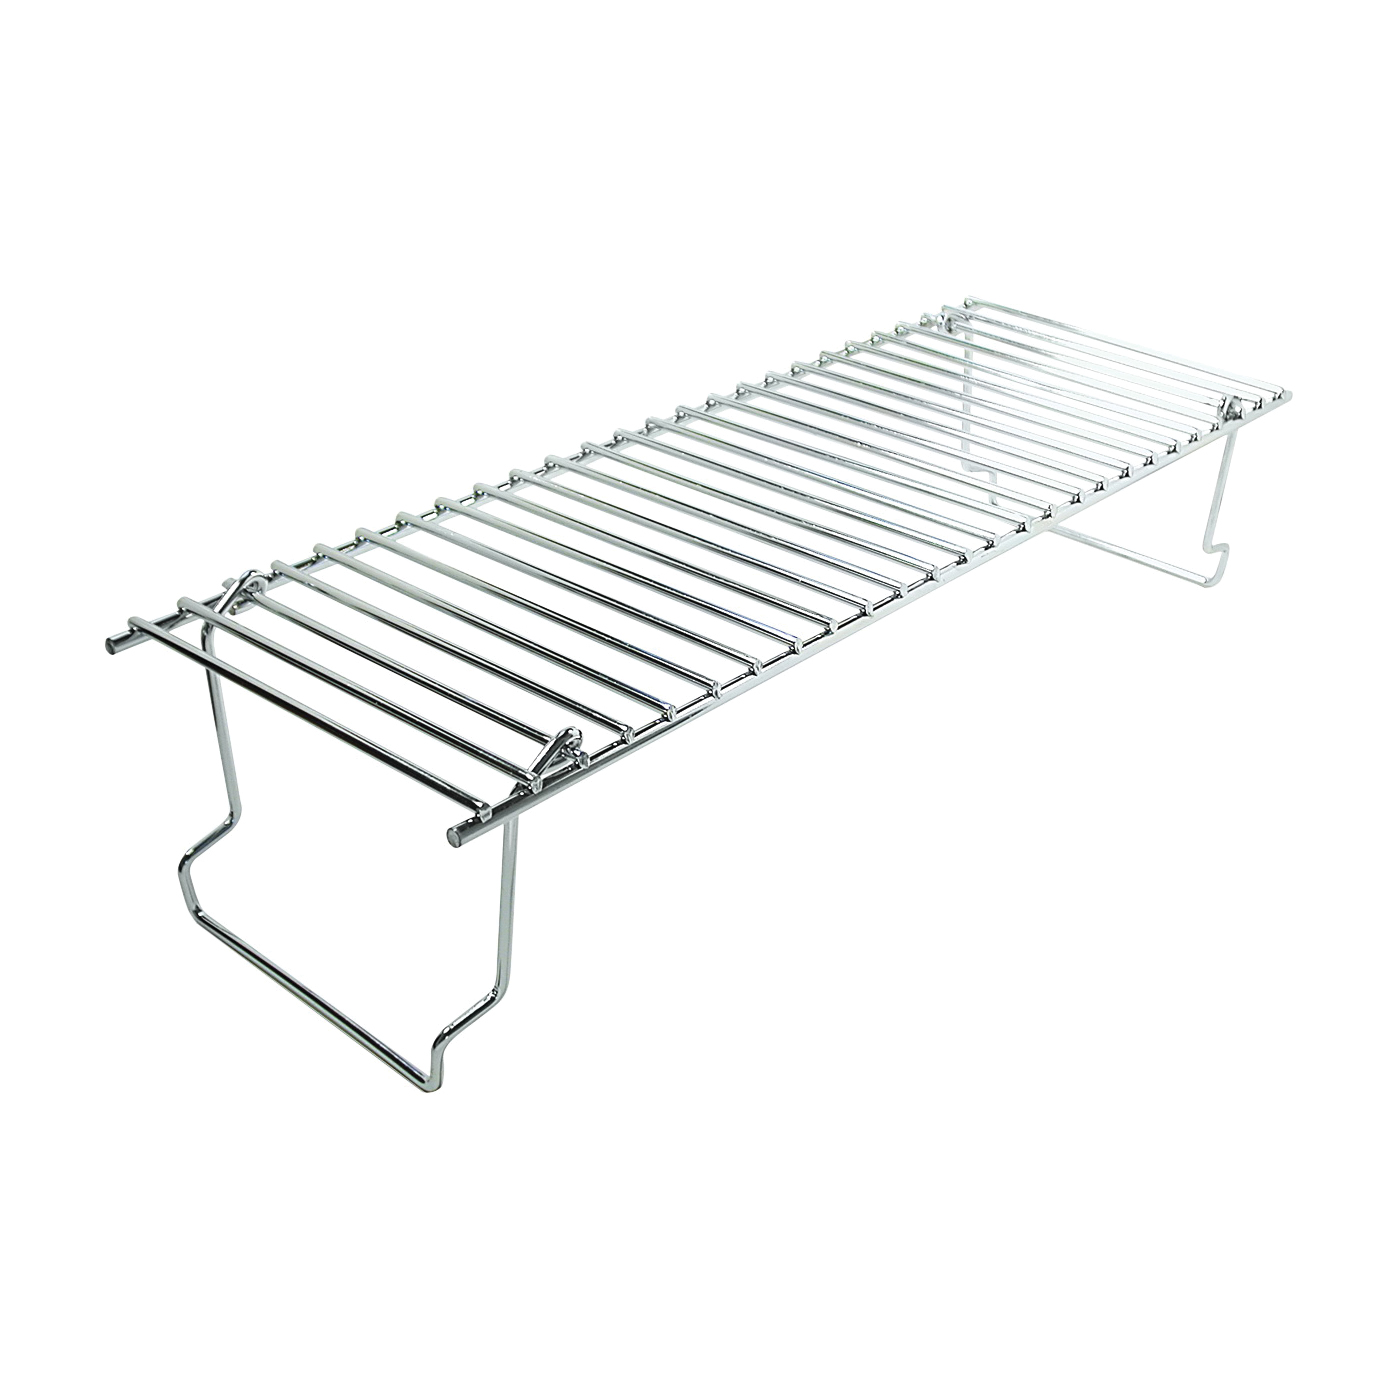 Picture of GrillPro 14625 Warming Rack, 20 in L, 7 in W, Stainless Steel, Chrome